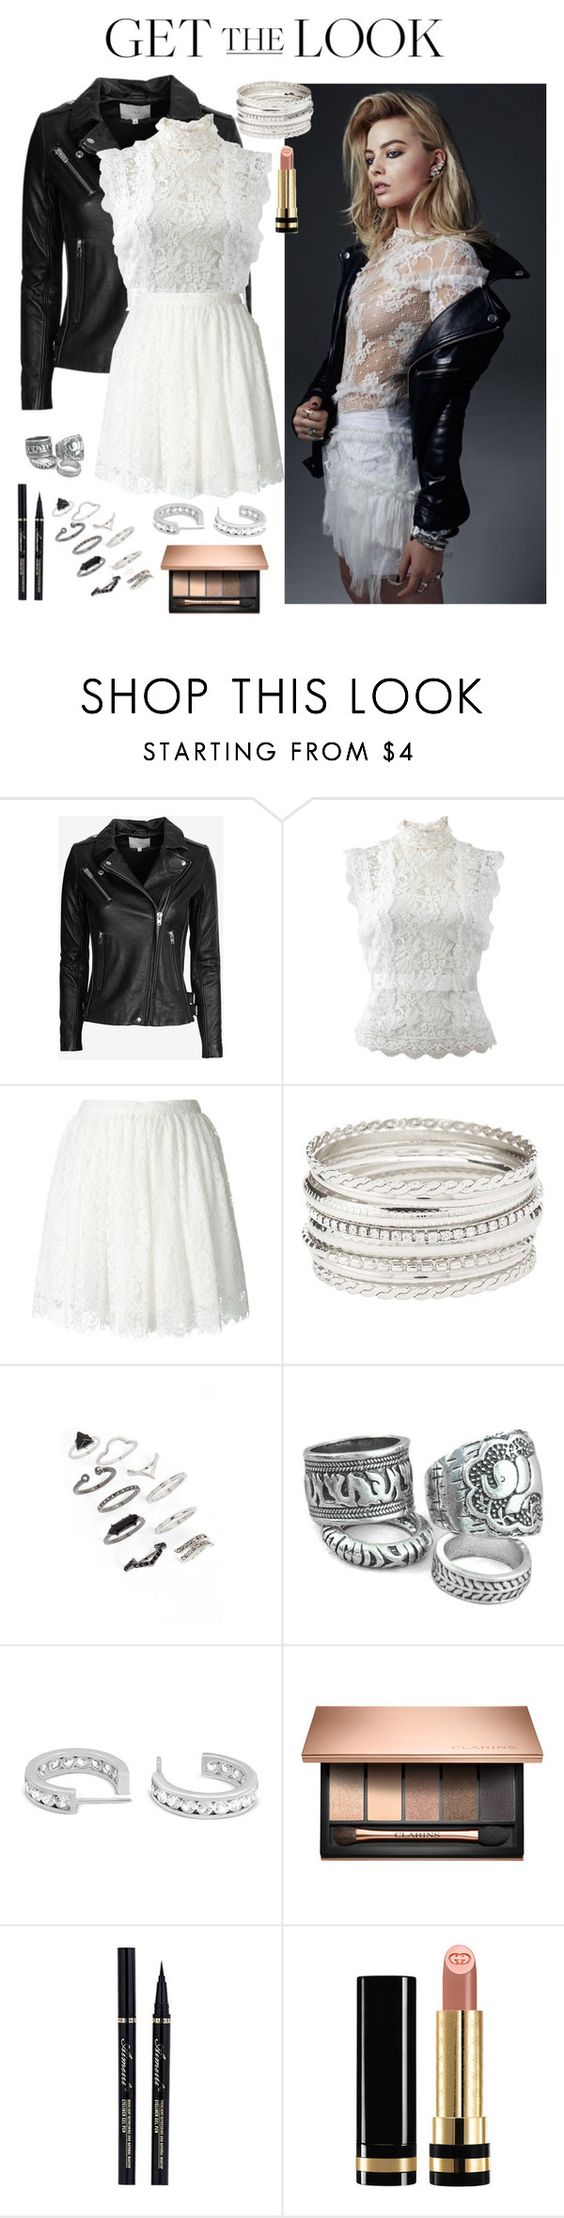 """Get the look - contest"" by rowan-na-daw ❤ liked on Polyvore featuring IRO, Oscar de la Renta, Charlotte Russe, Topshop, Gucci, GetTheLook and Australian"